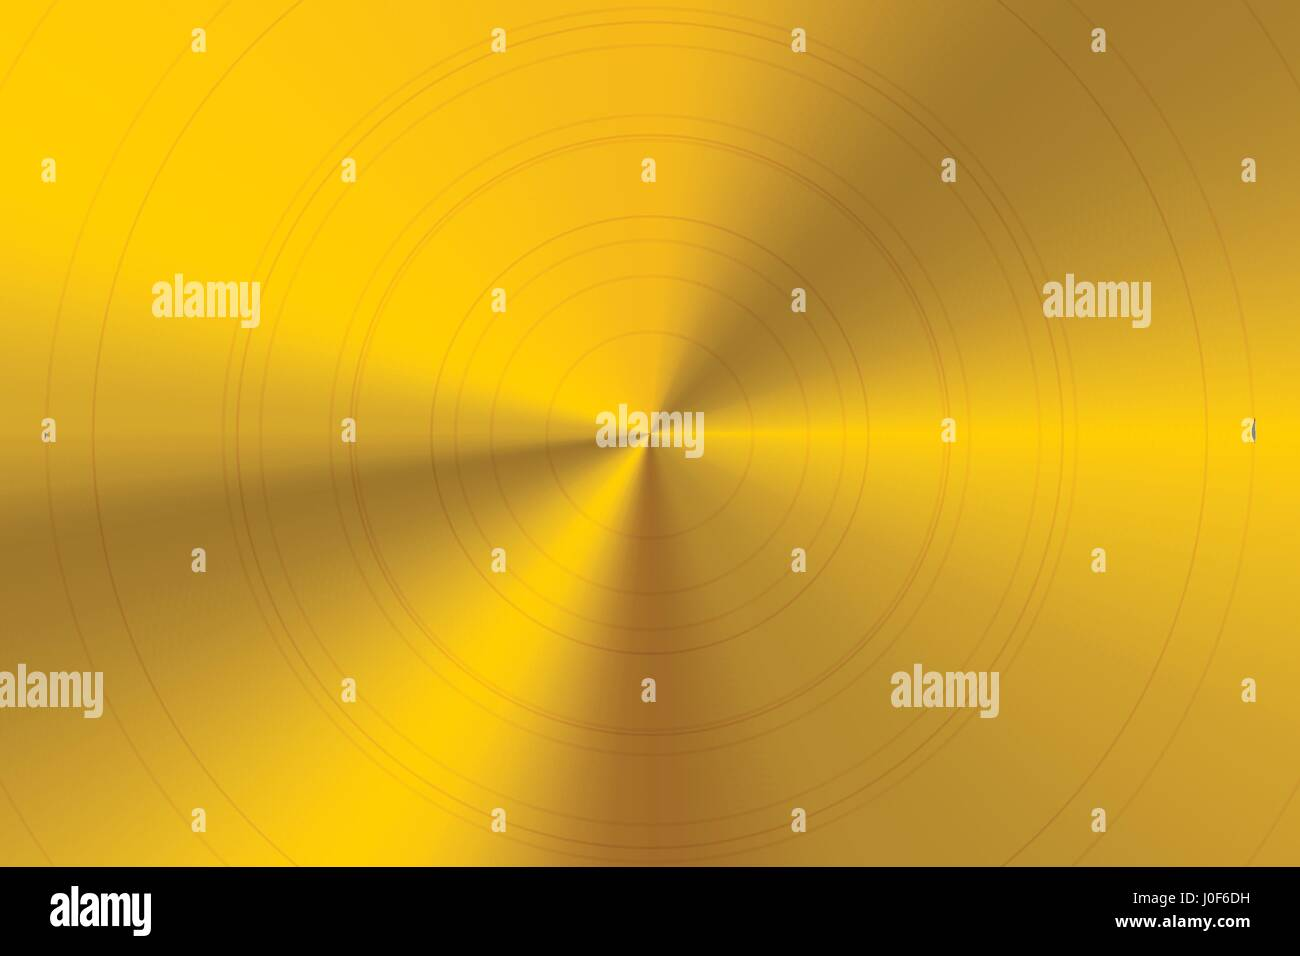 Bright glossy round polished golden metal horizontal background - Stock Vector